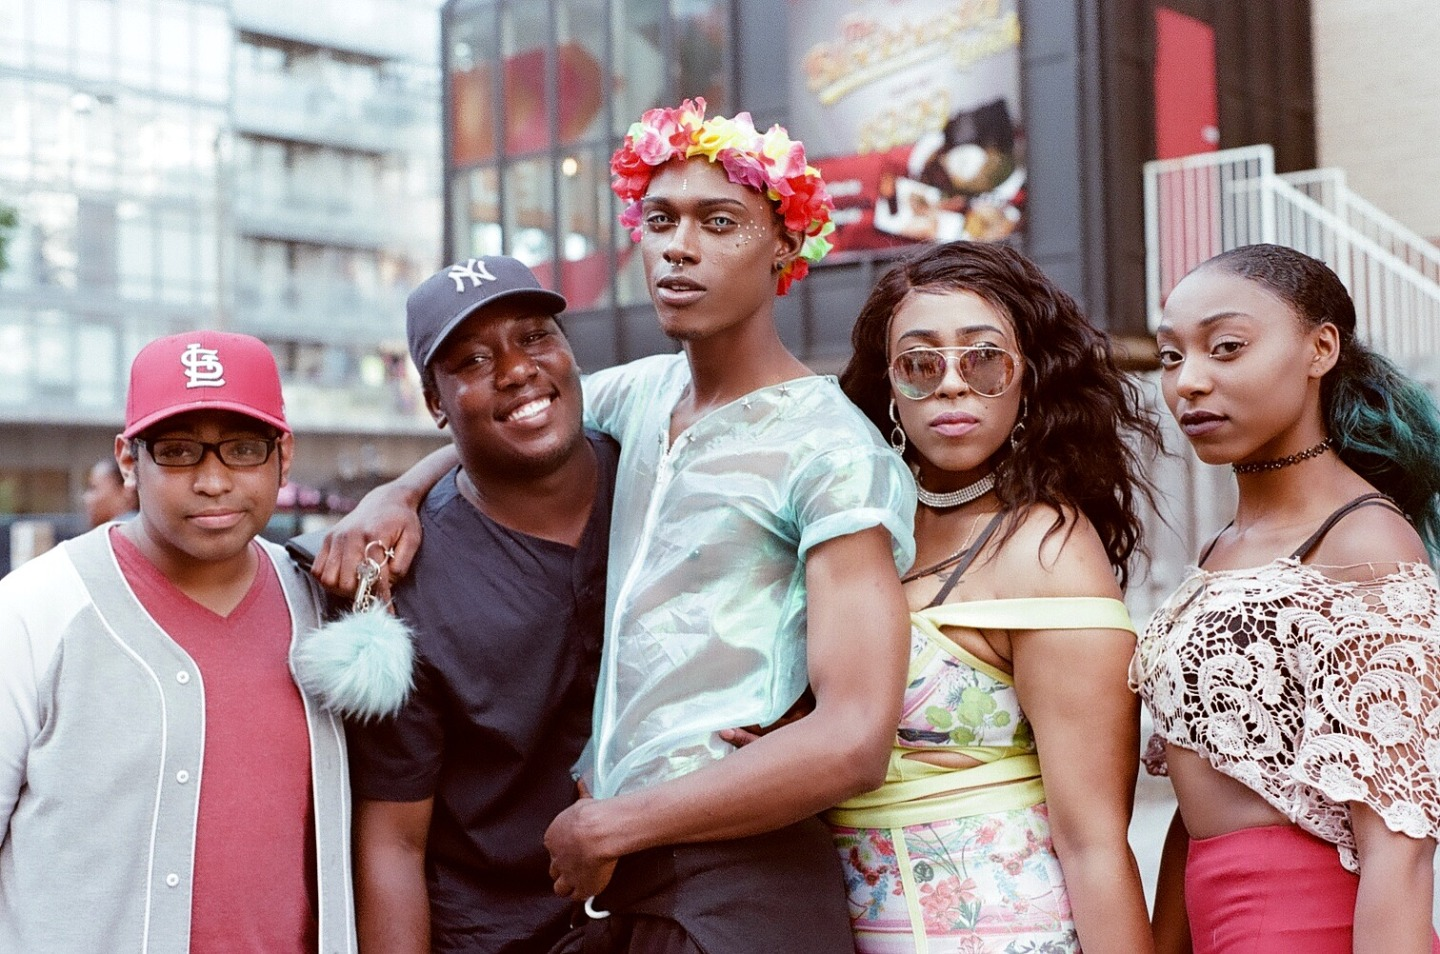 Blockorama Is Where Black Lives Mattered At Toronto Pride